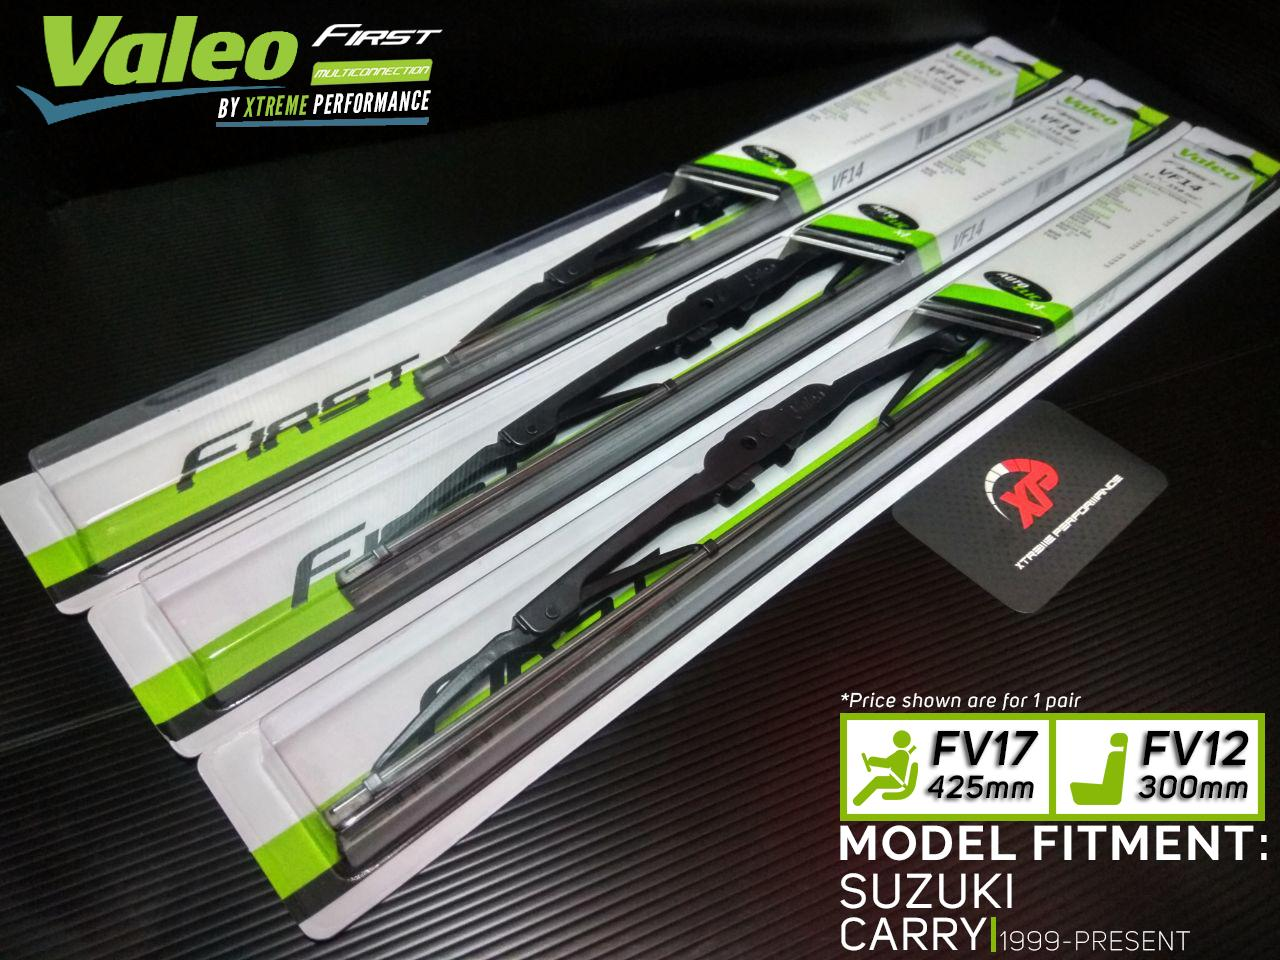 Valeo First Windshield Wiper Blades For SUZUKI CARRY (1999-PRESENT)